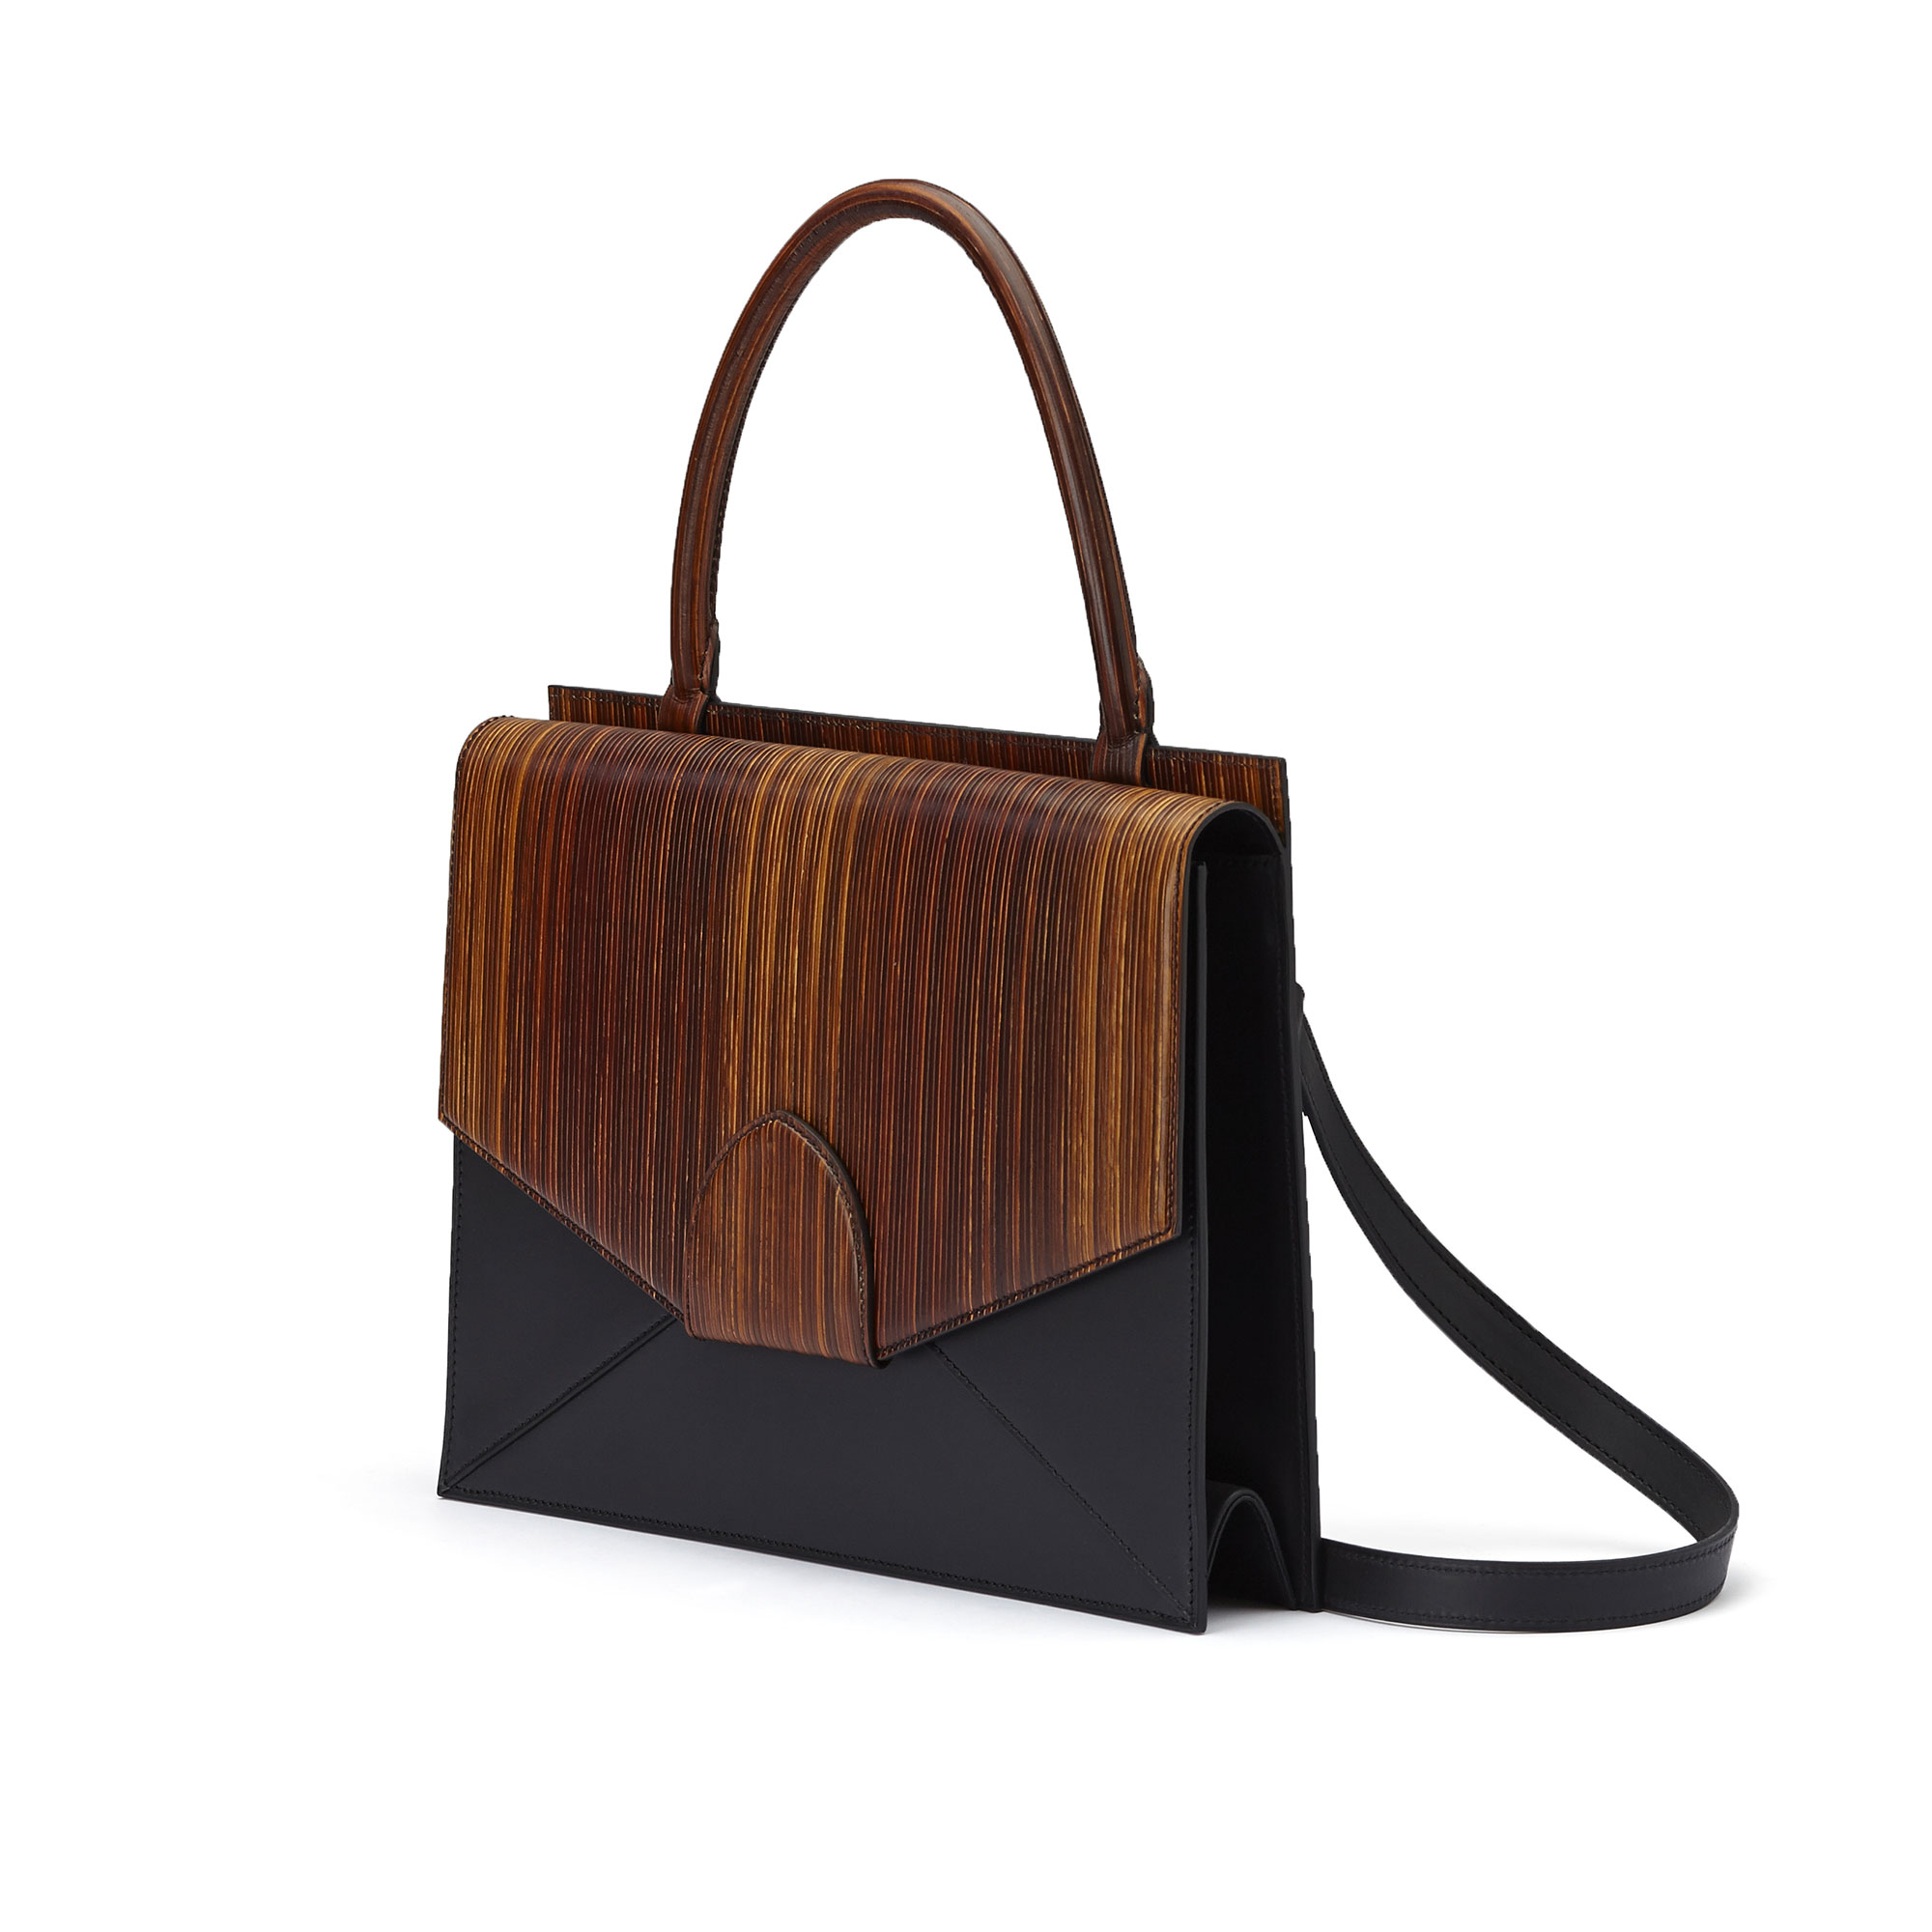 The black and brown wood leather, french calf Dafne bag by Bertoni 1949 02